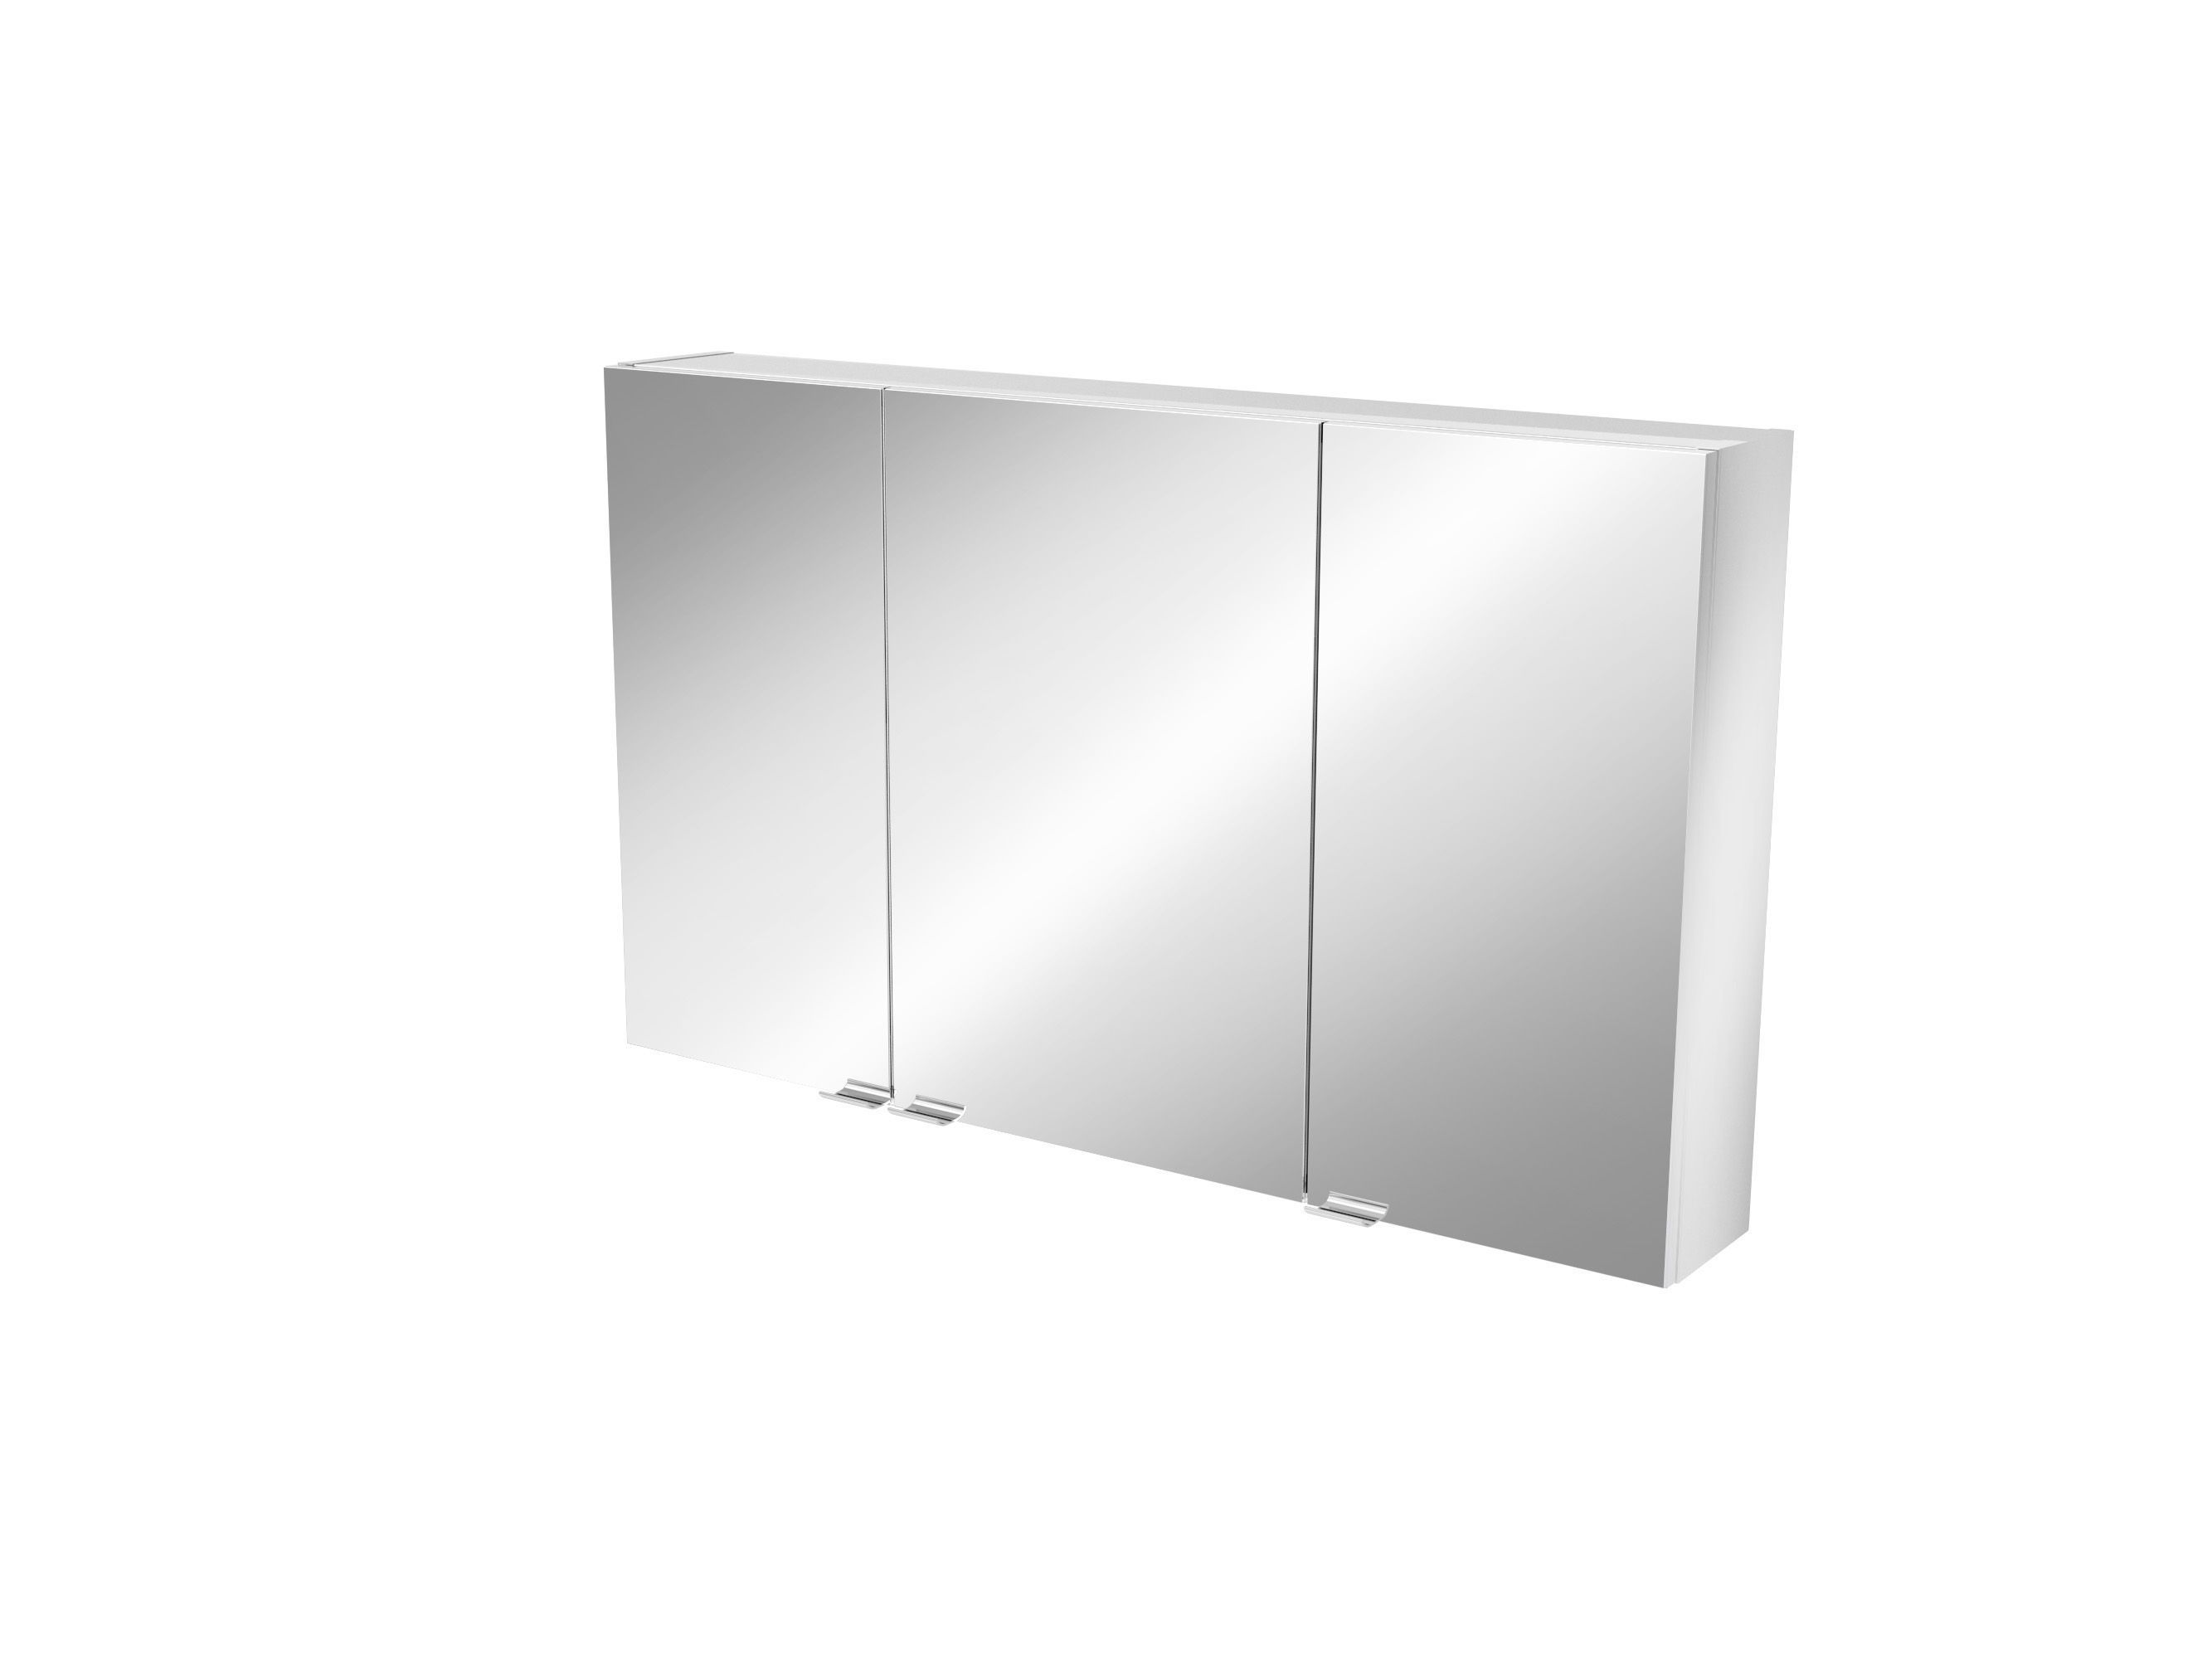 Cooke & Lewis Imandra Short Mirrored Wall Cabinet, (w)1000mm